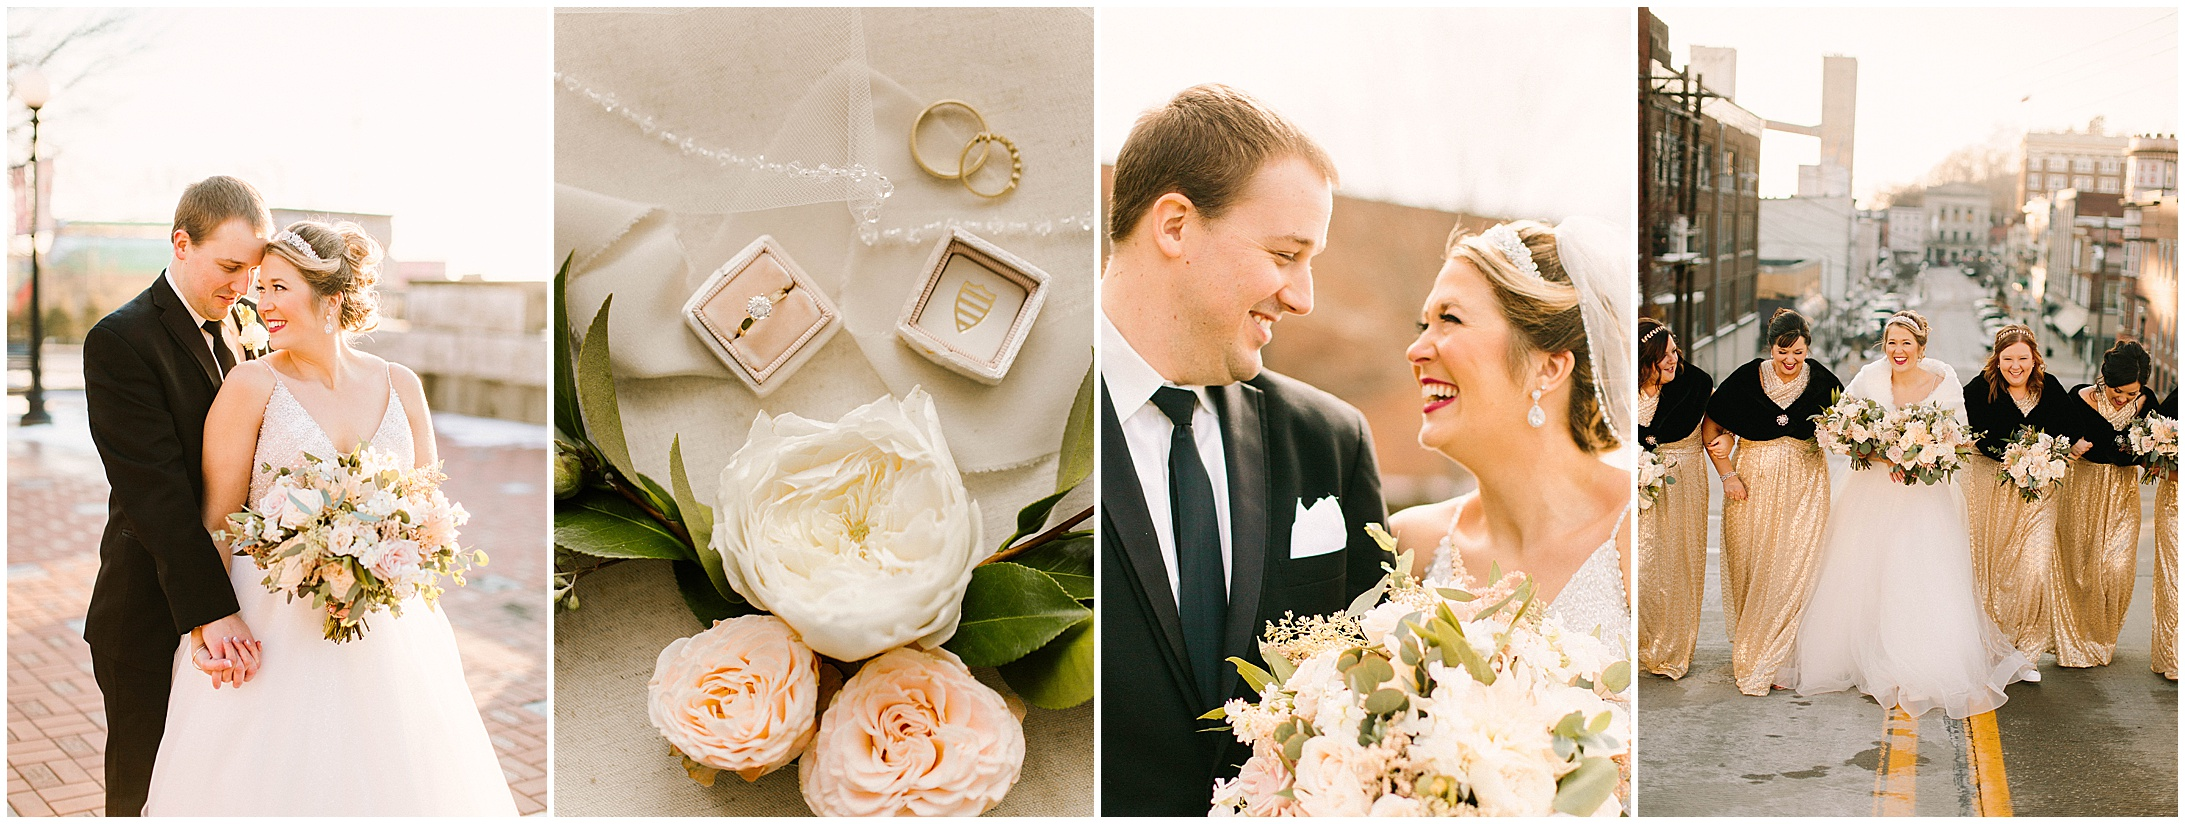 Veronica Young Photography, St. Louis wedding photographer, Alton wedding photographer